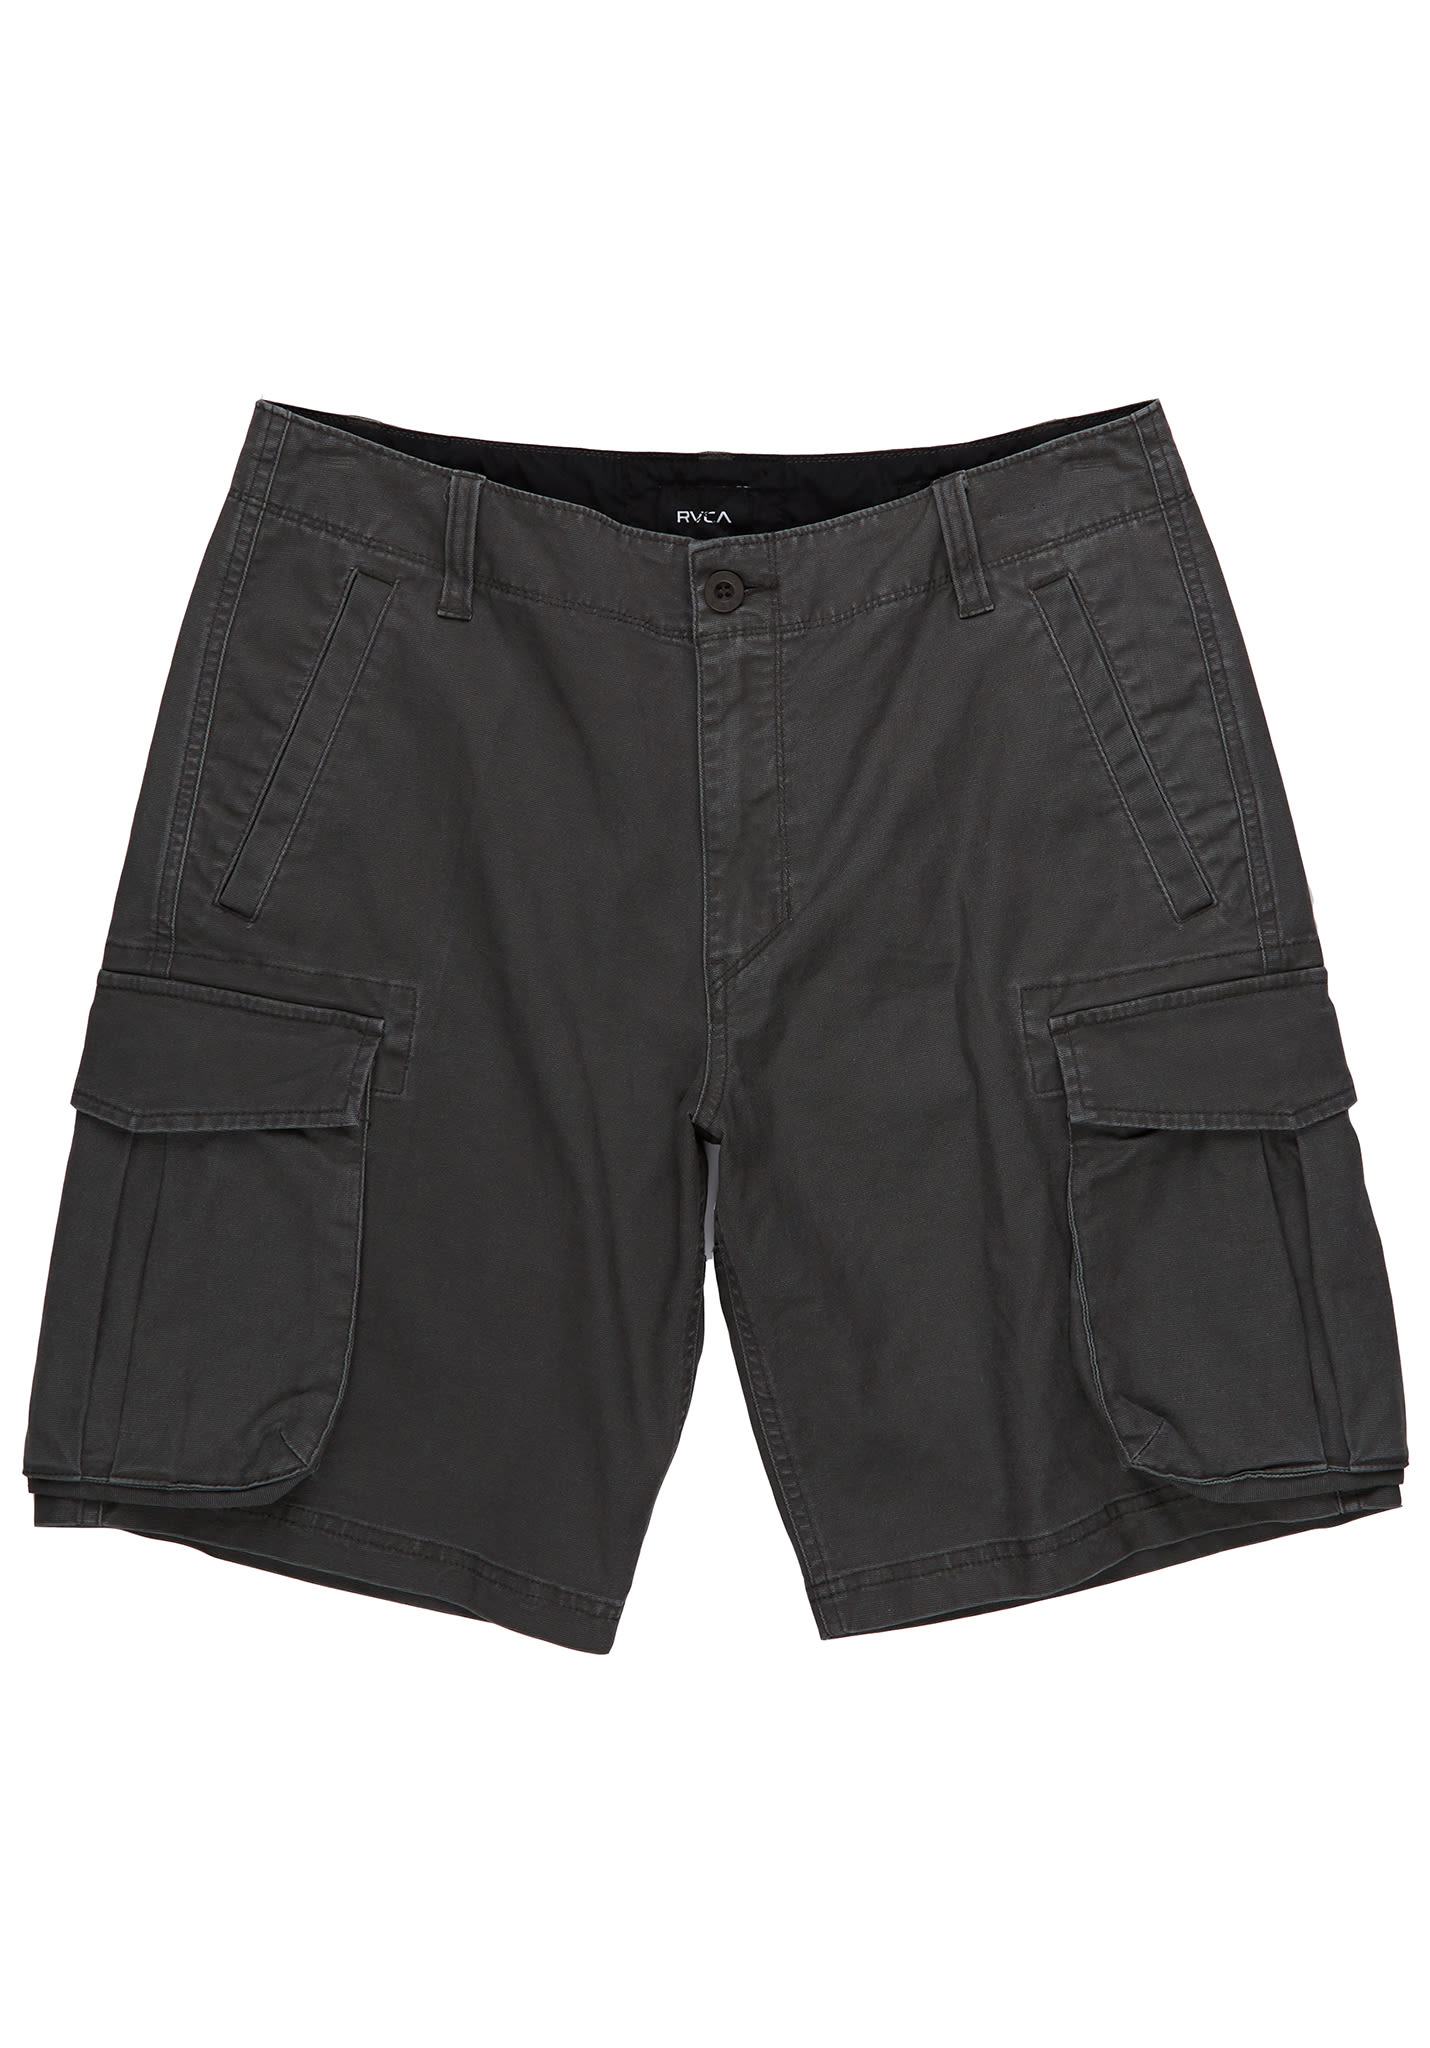 8d351f3403 RVCA Wannabe - Cargo Shorts for Men - Grey - Planet Sports